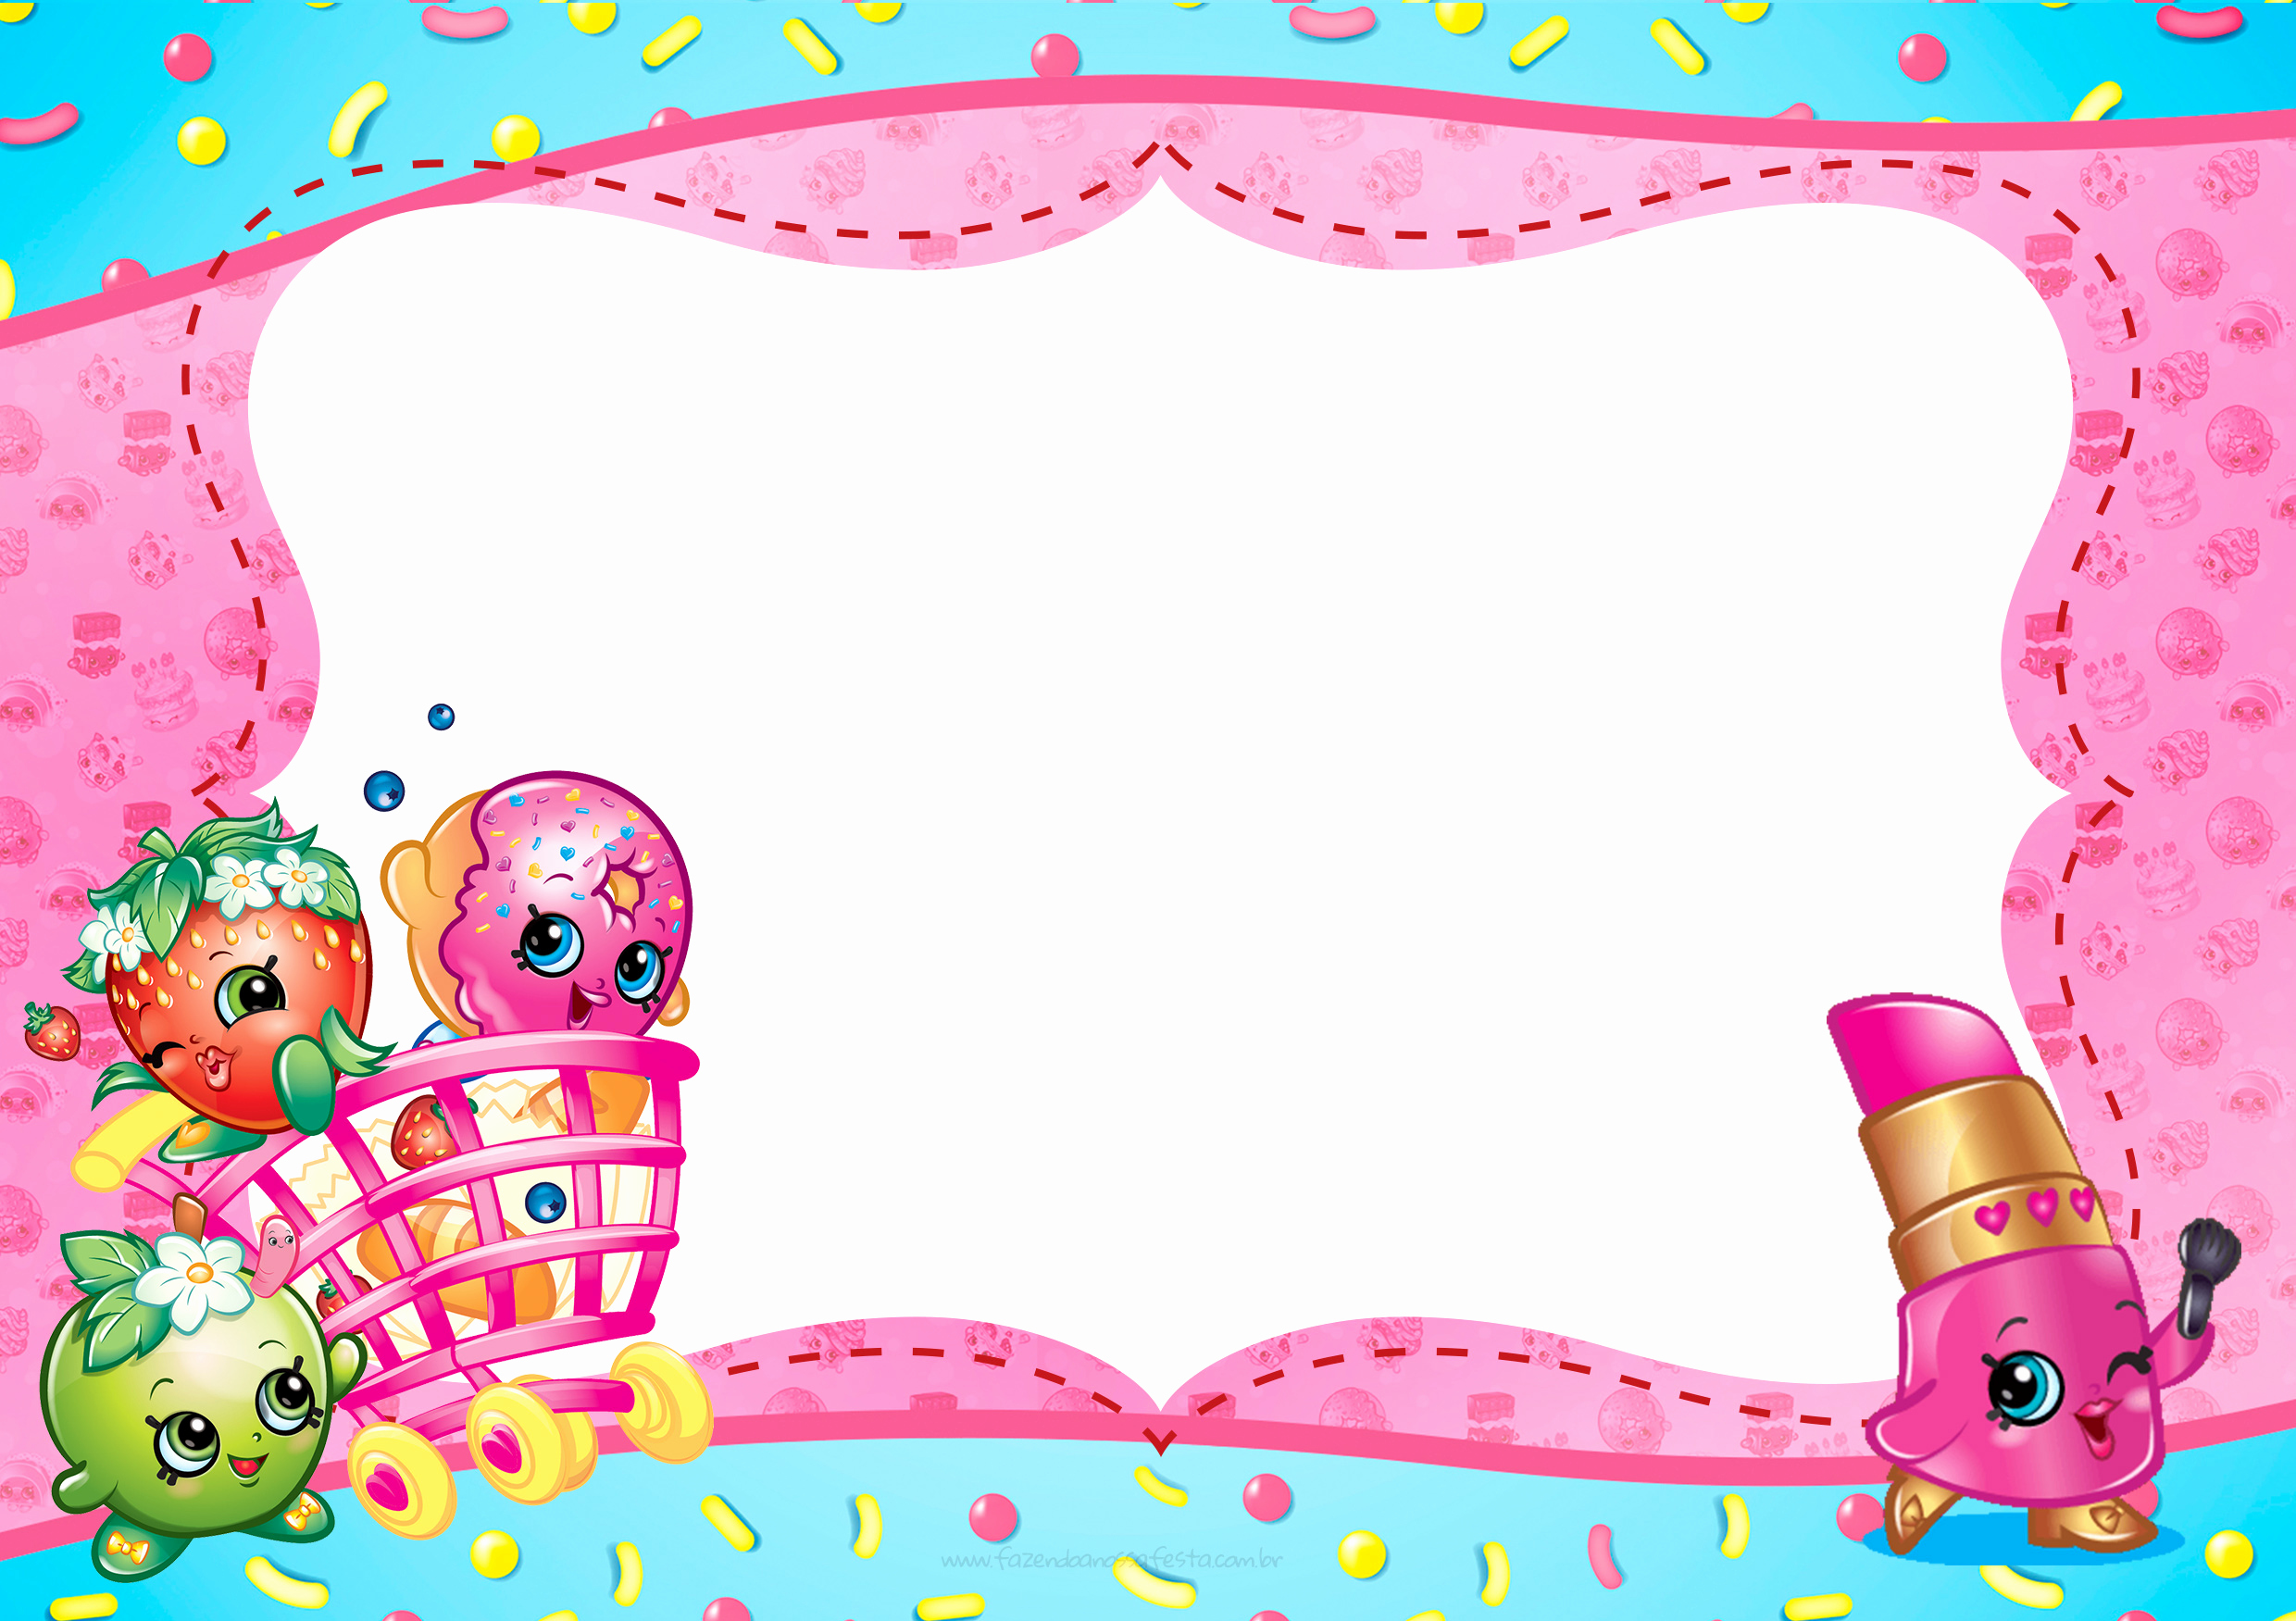 Shopkins Birthday Invitation Template Free Luxury 1000 Images About Shopkins Printables On Pinterest